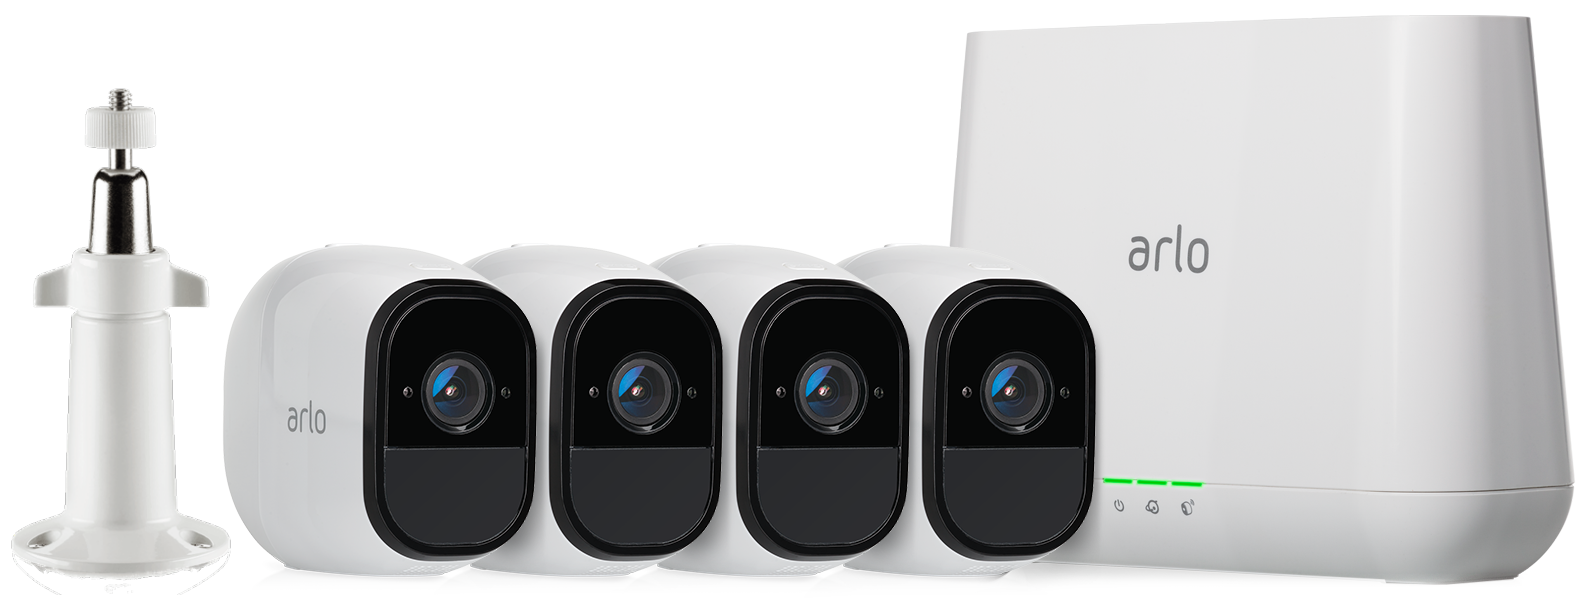 Top Five Picks from the Best Security Cameras